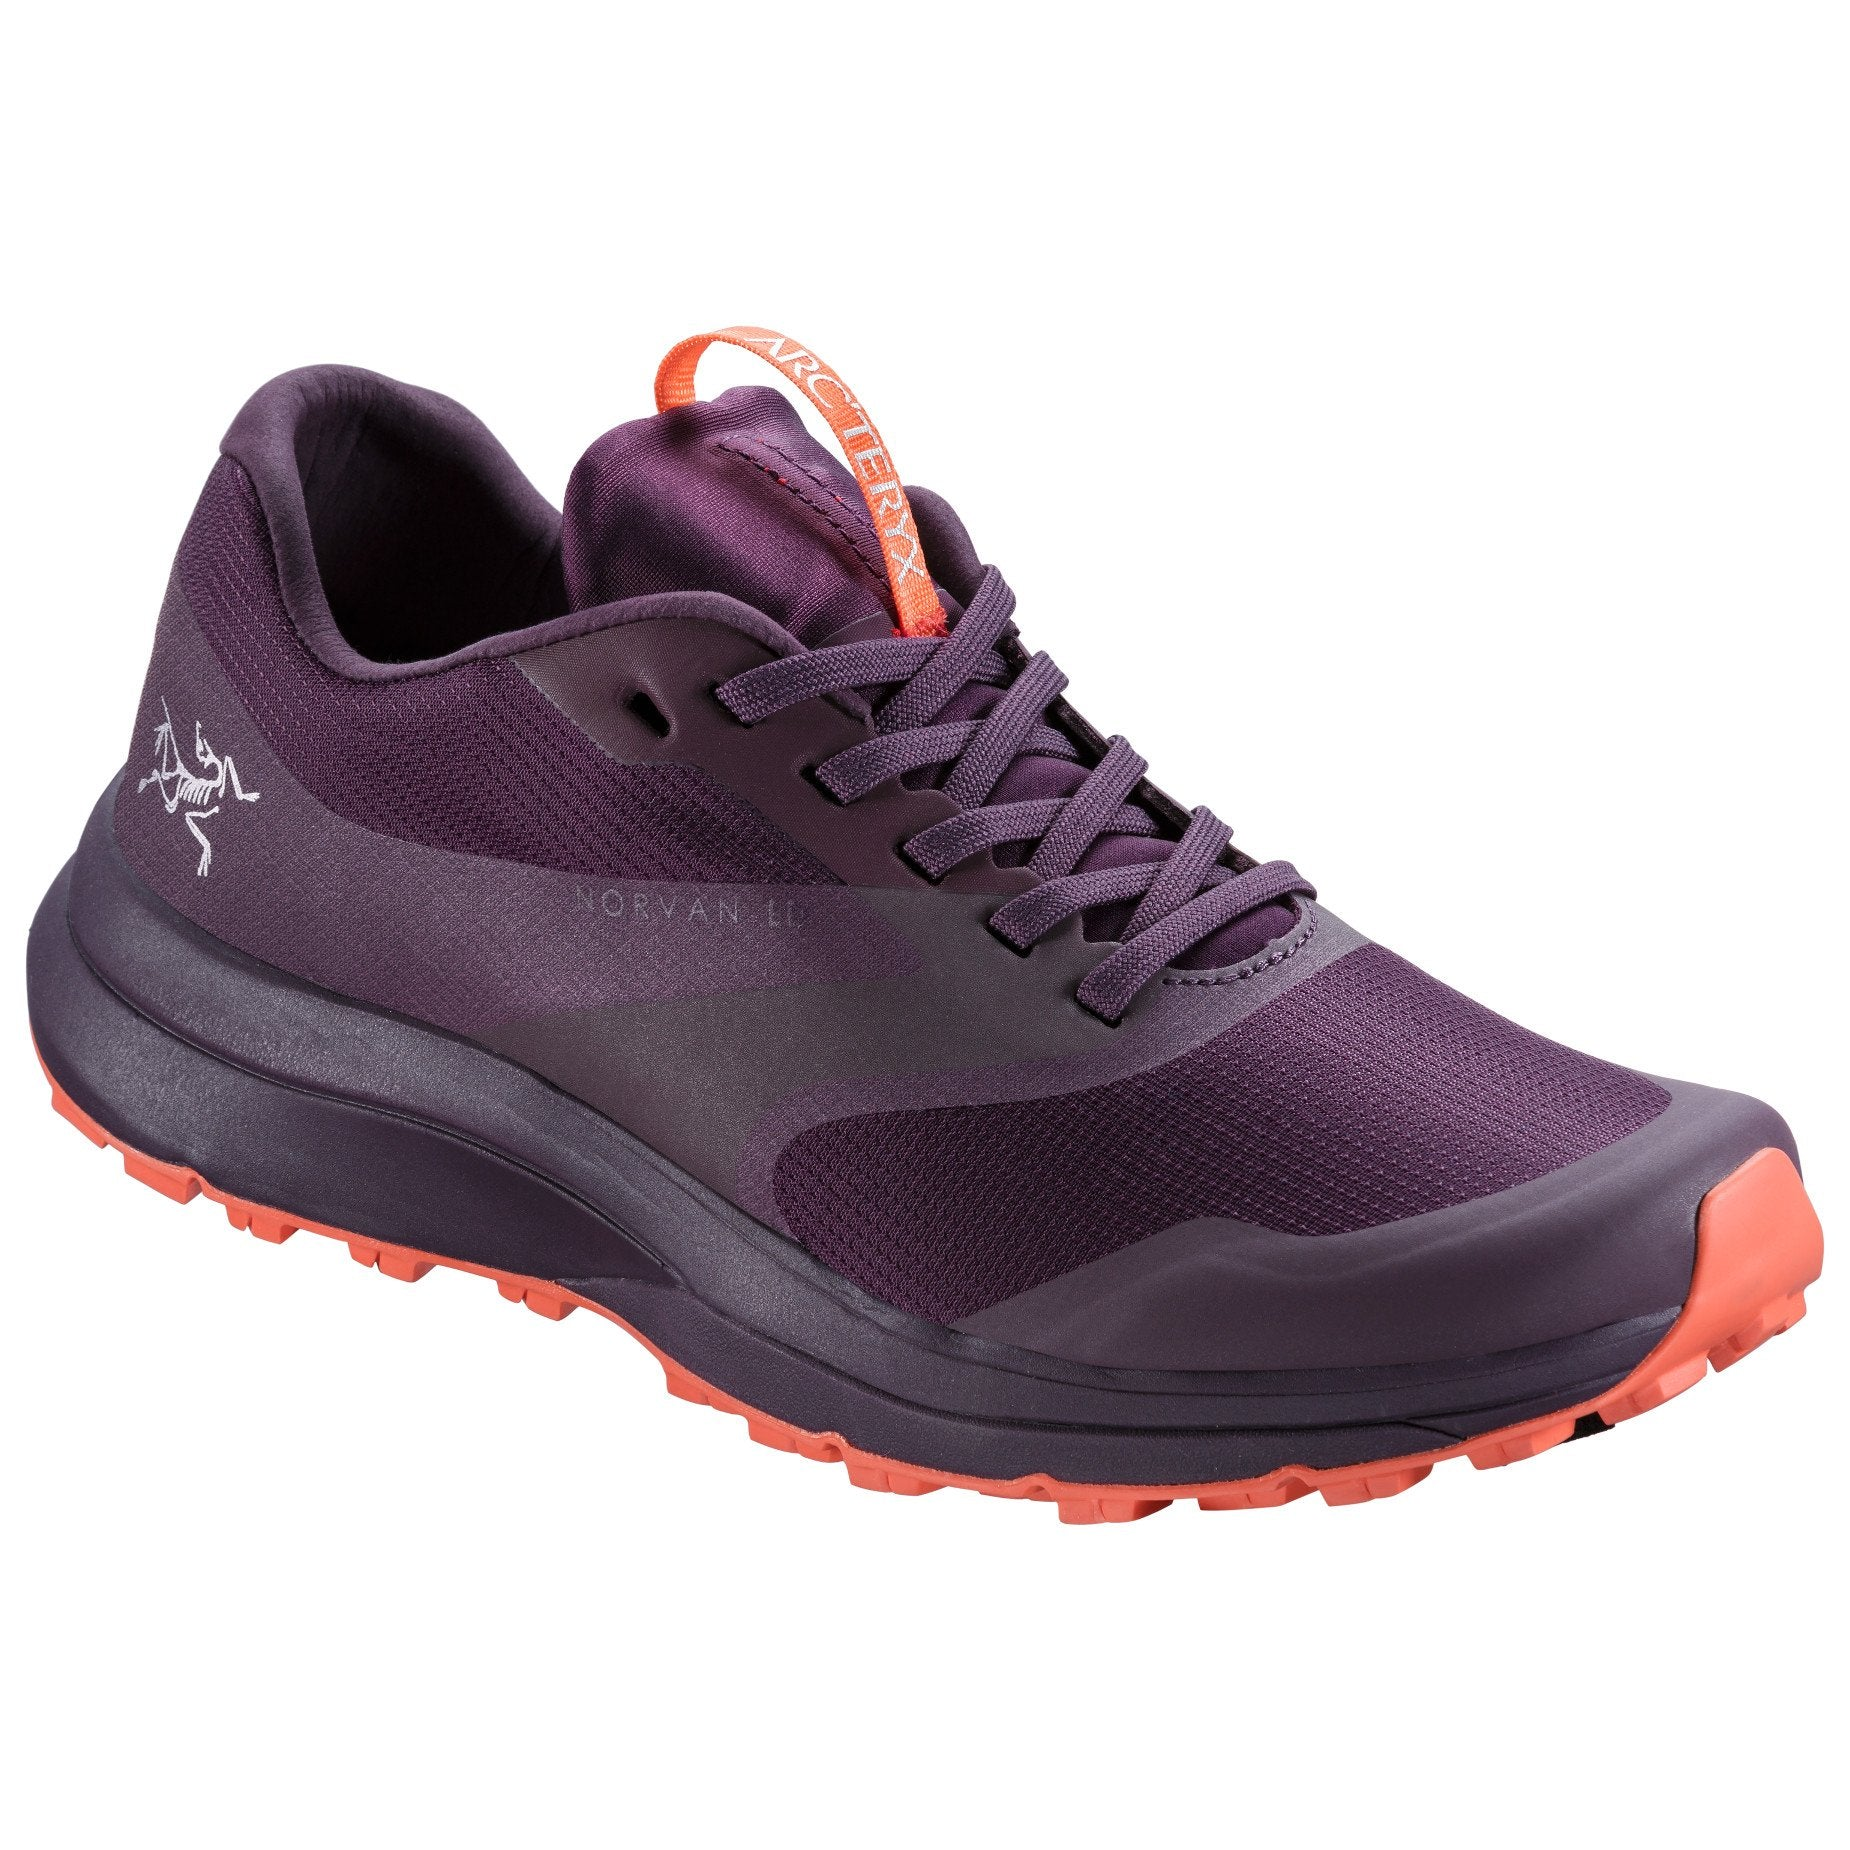 ArcTeryx Norvan LD Womens trail running shoe, outer side view, in deep purple colour